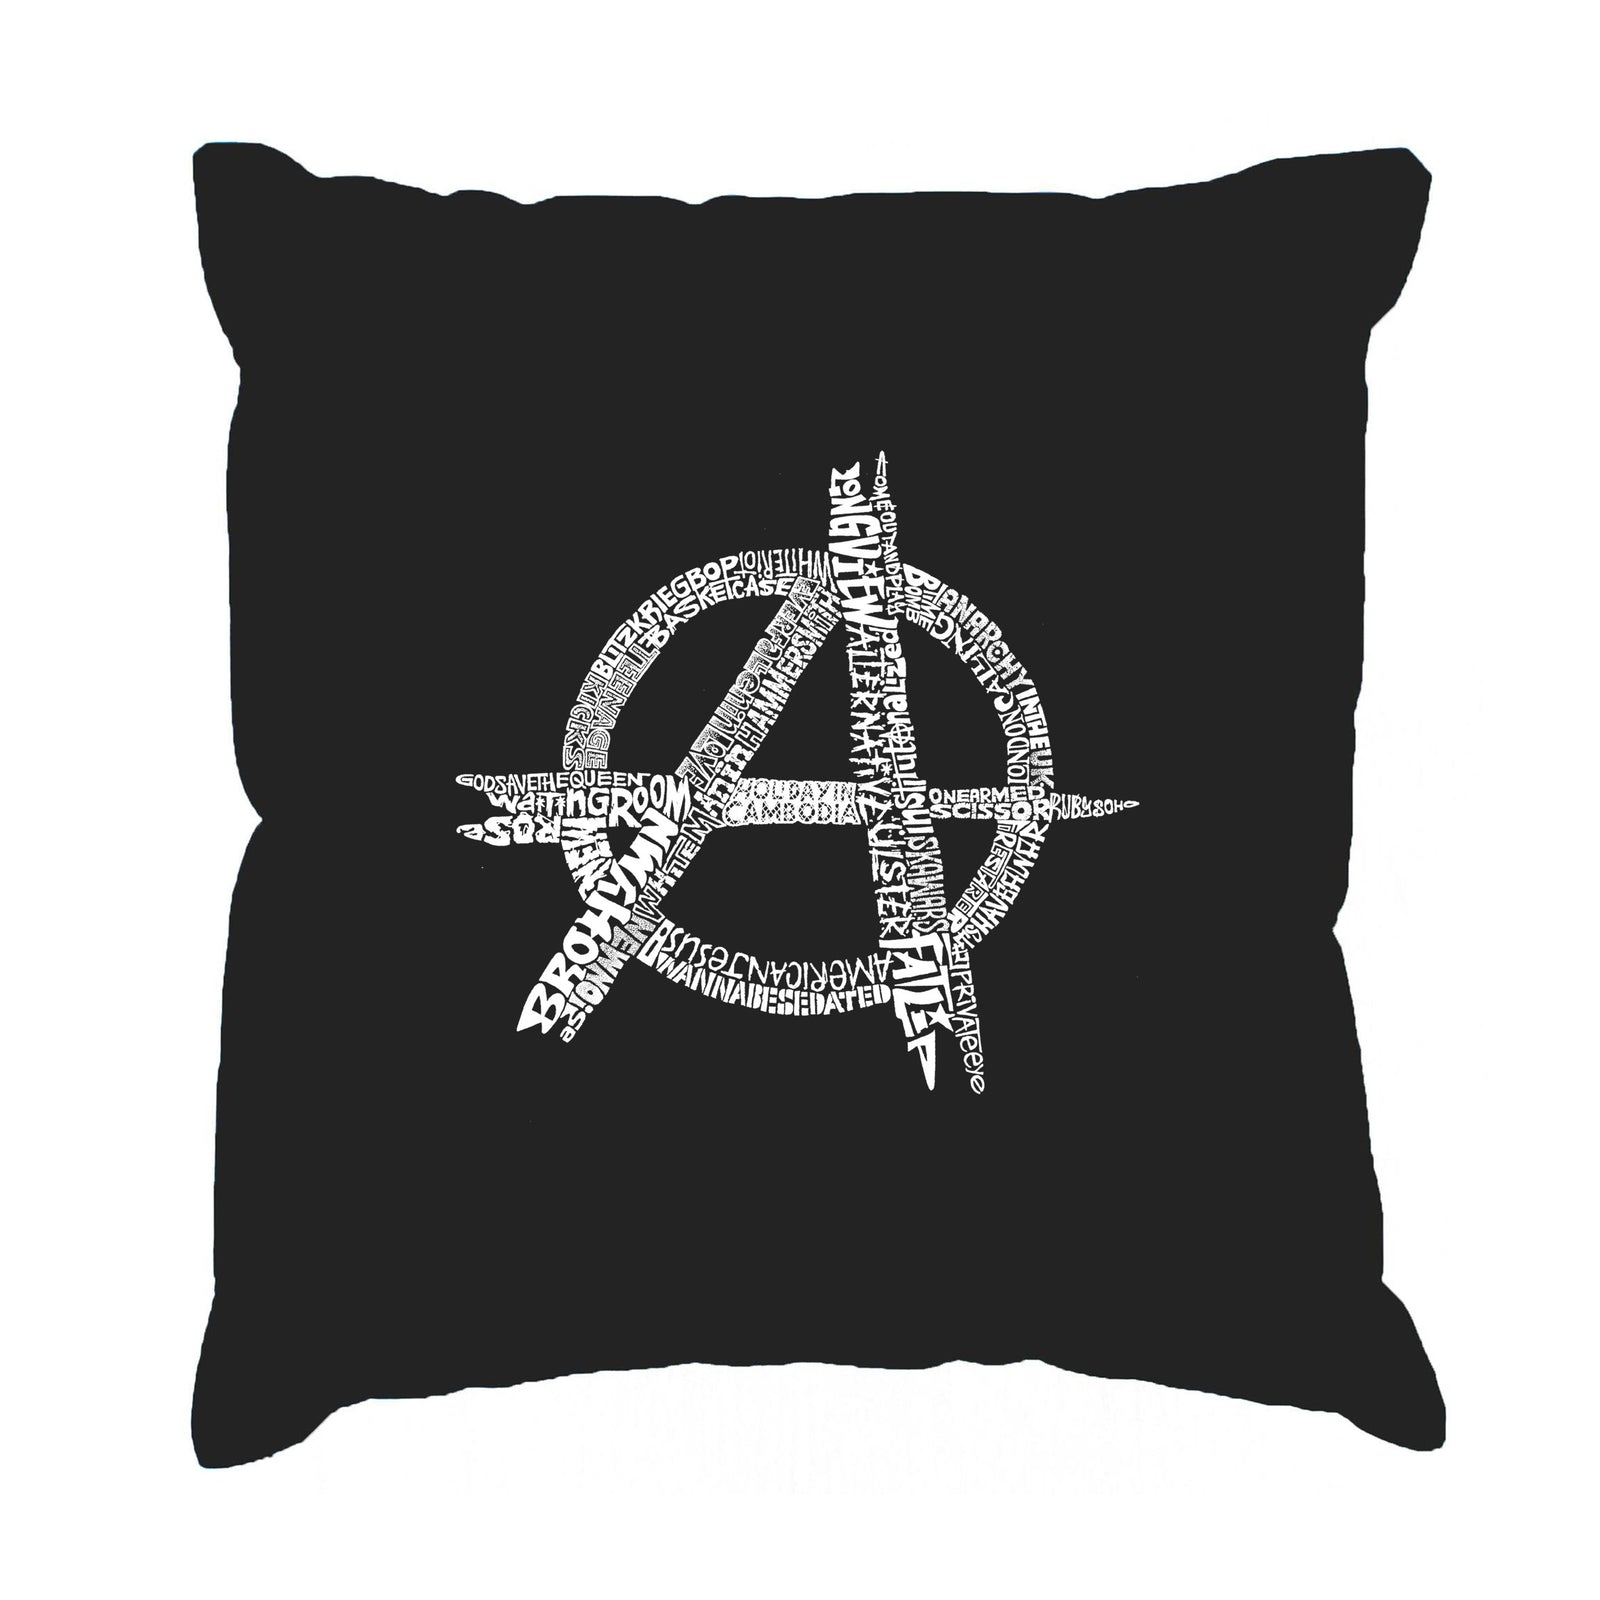 Throw Pillow Cover - GREAT ALL TIME PUNK SONGS